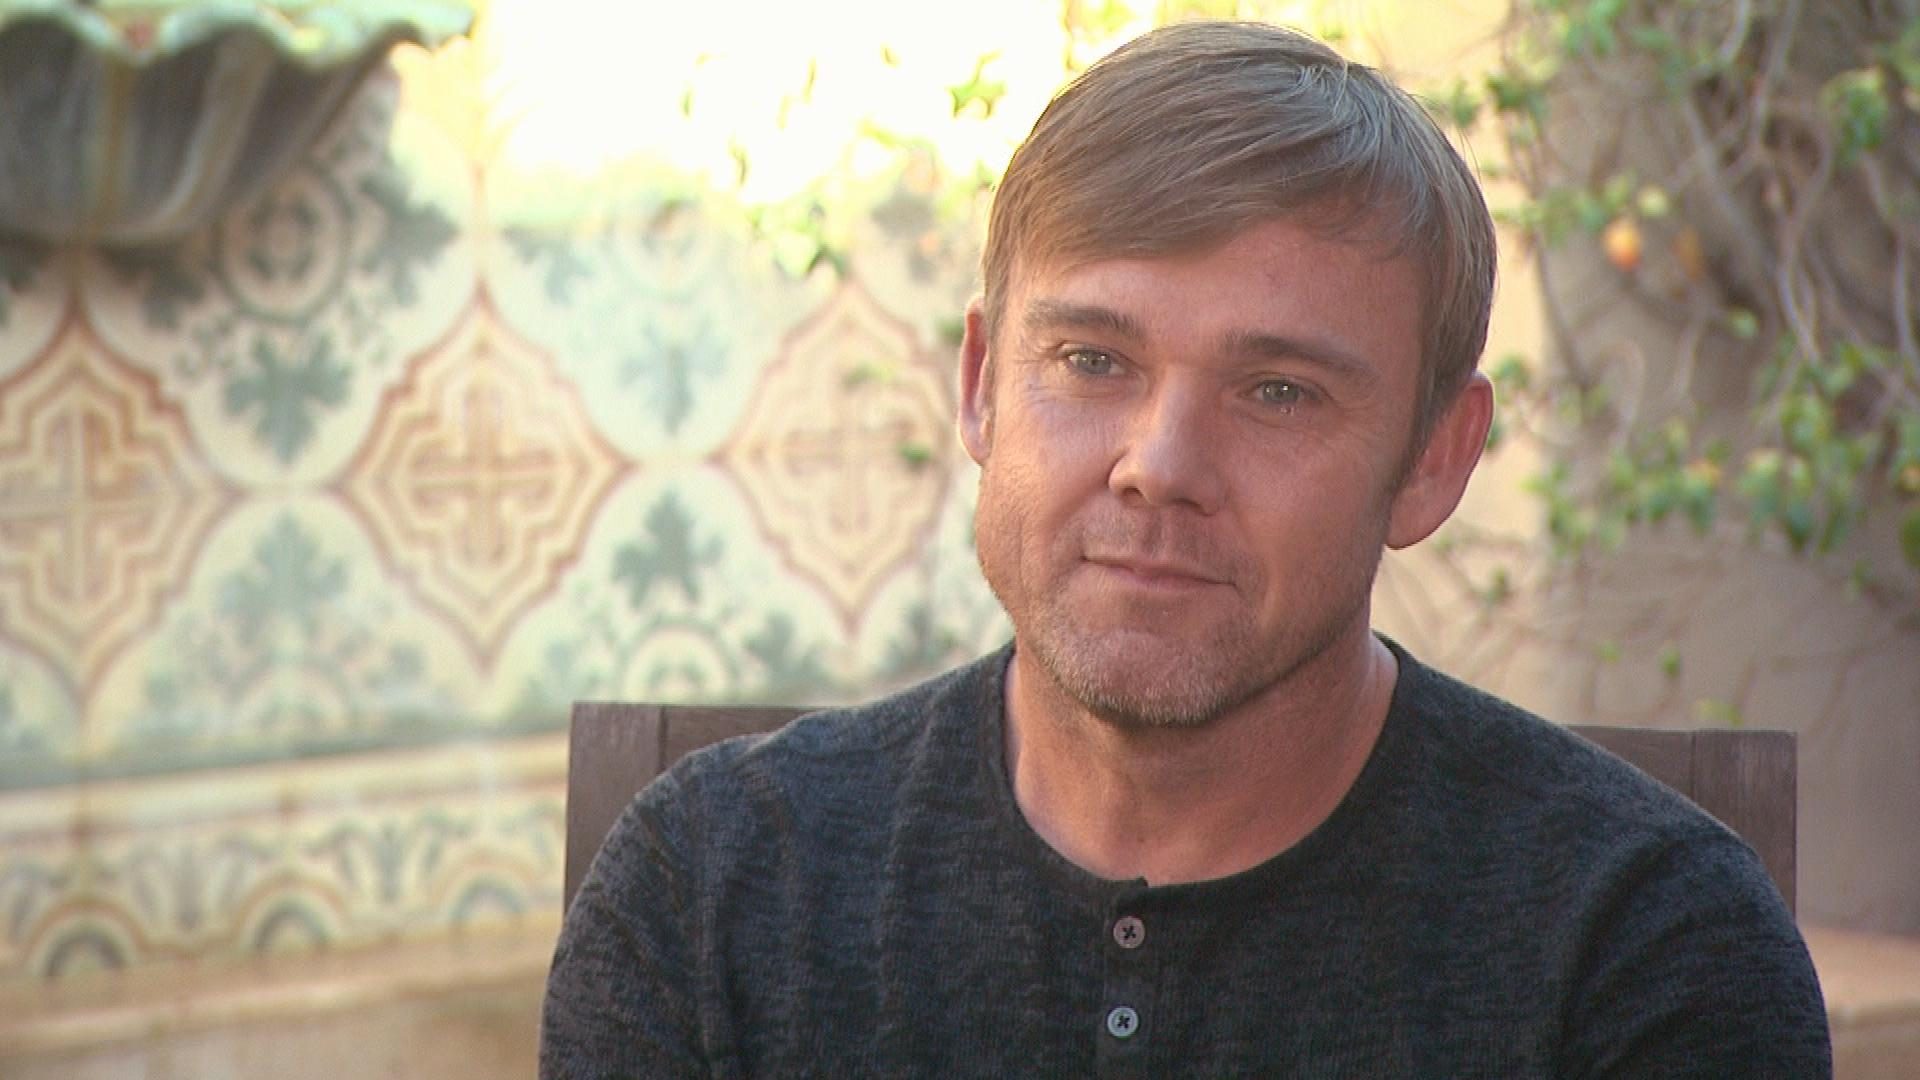 Ricky Schroder's Family Tried to Hold an Intervention After